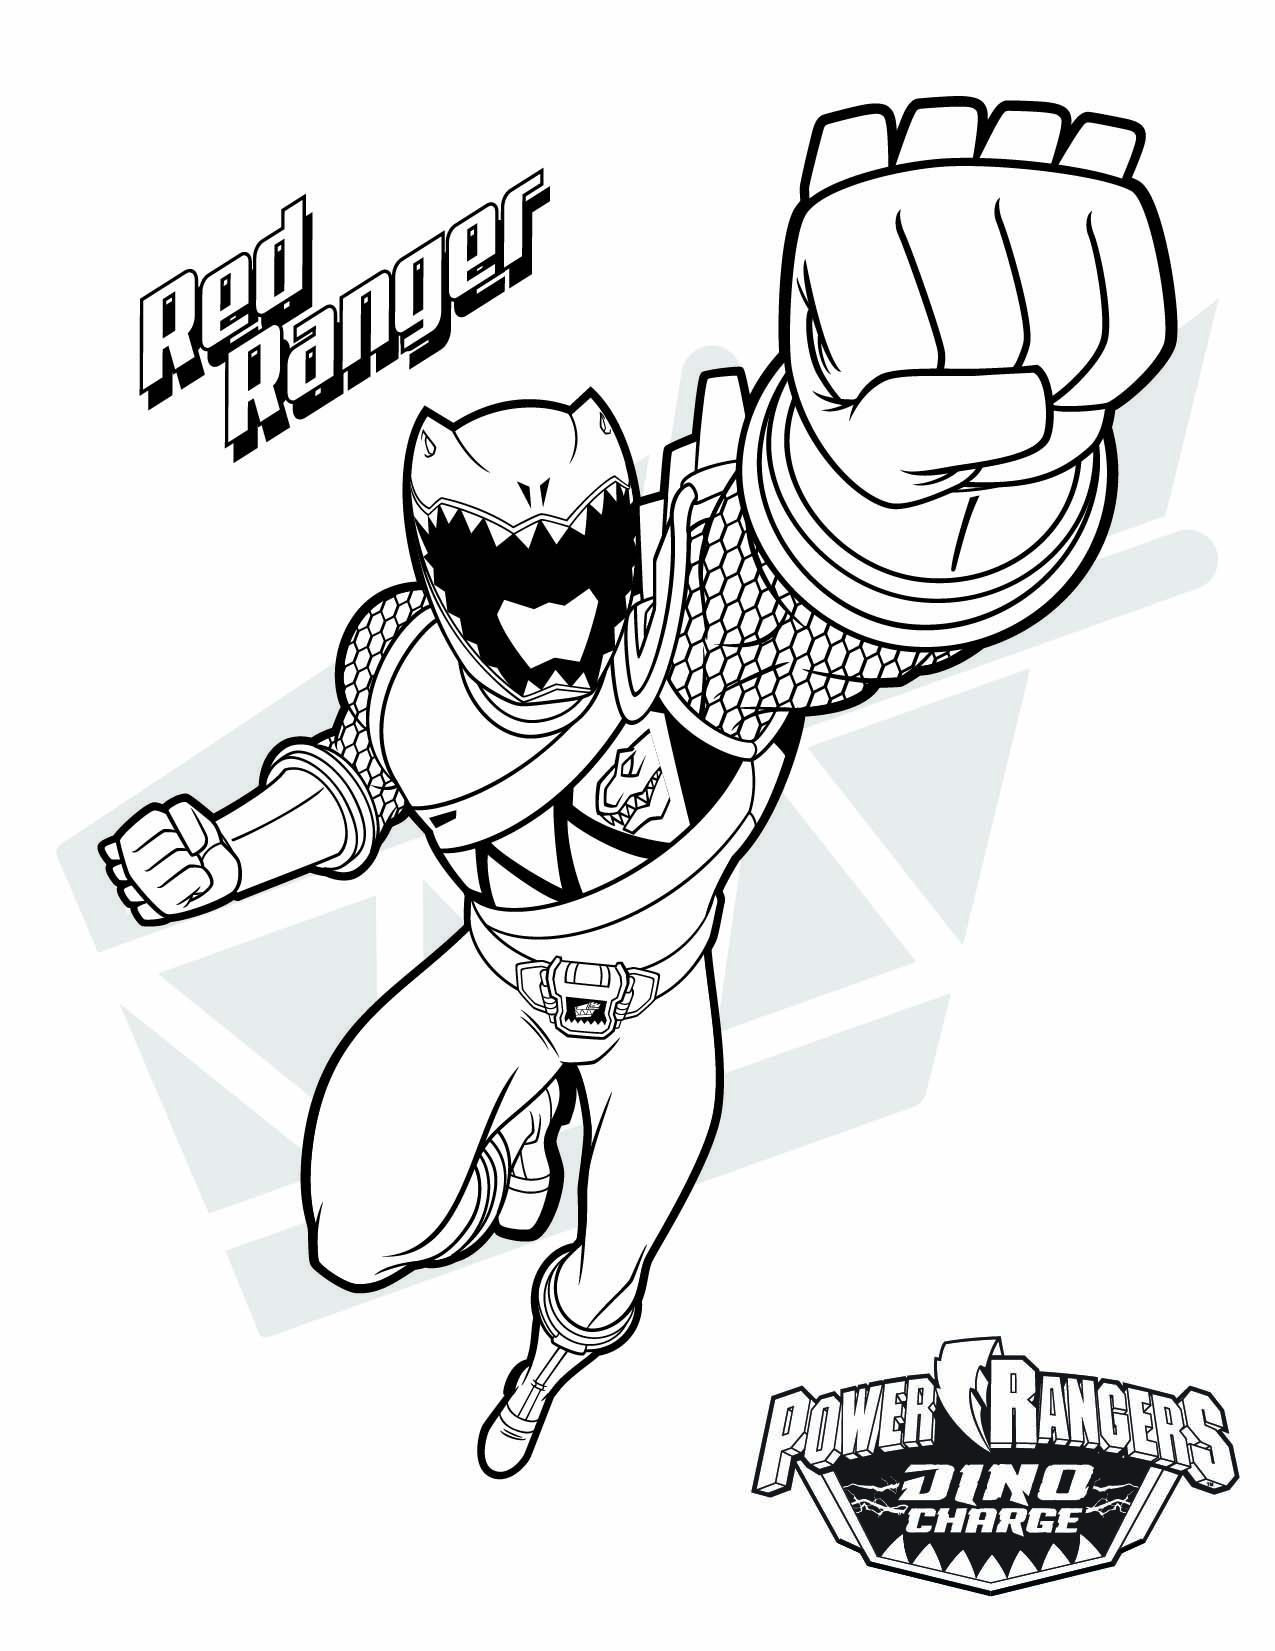 Free online coloring pages of power rangers - Red Ranger Download Them All Http Www Powerrangers Com Power Rangers Coloring Pagespower